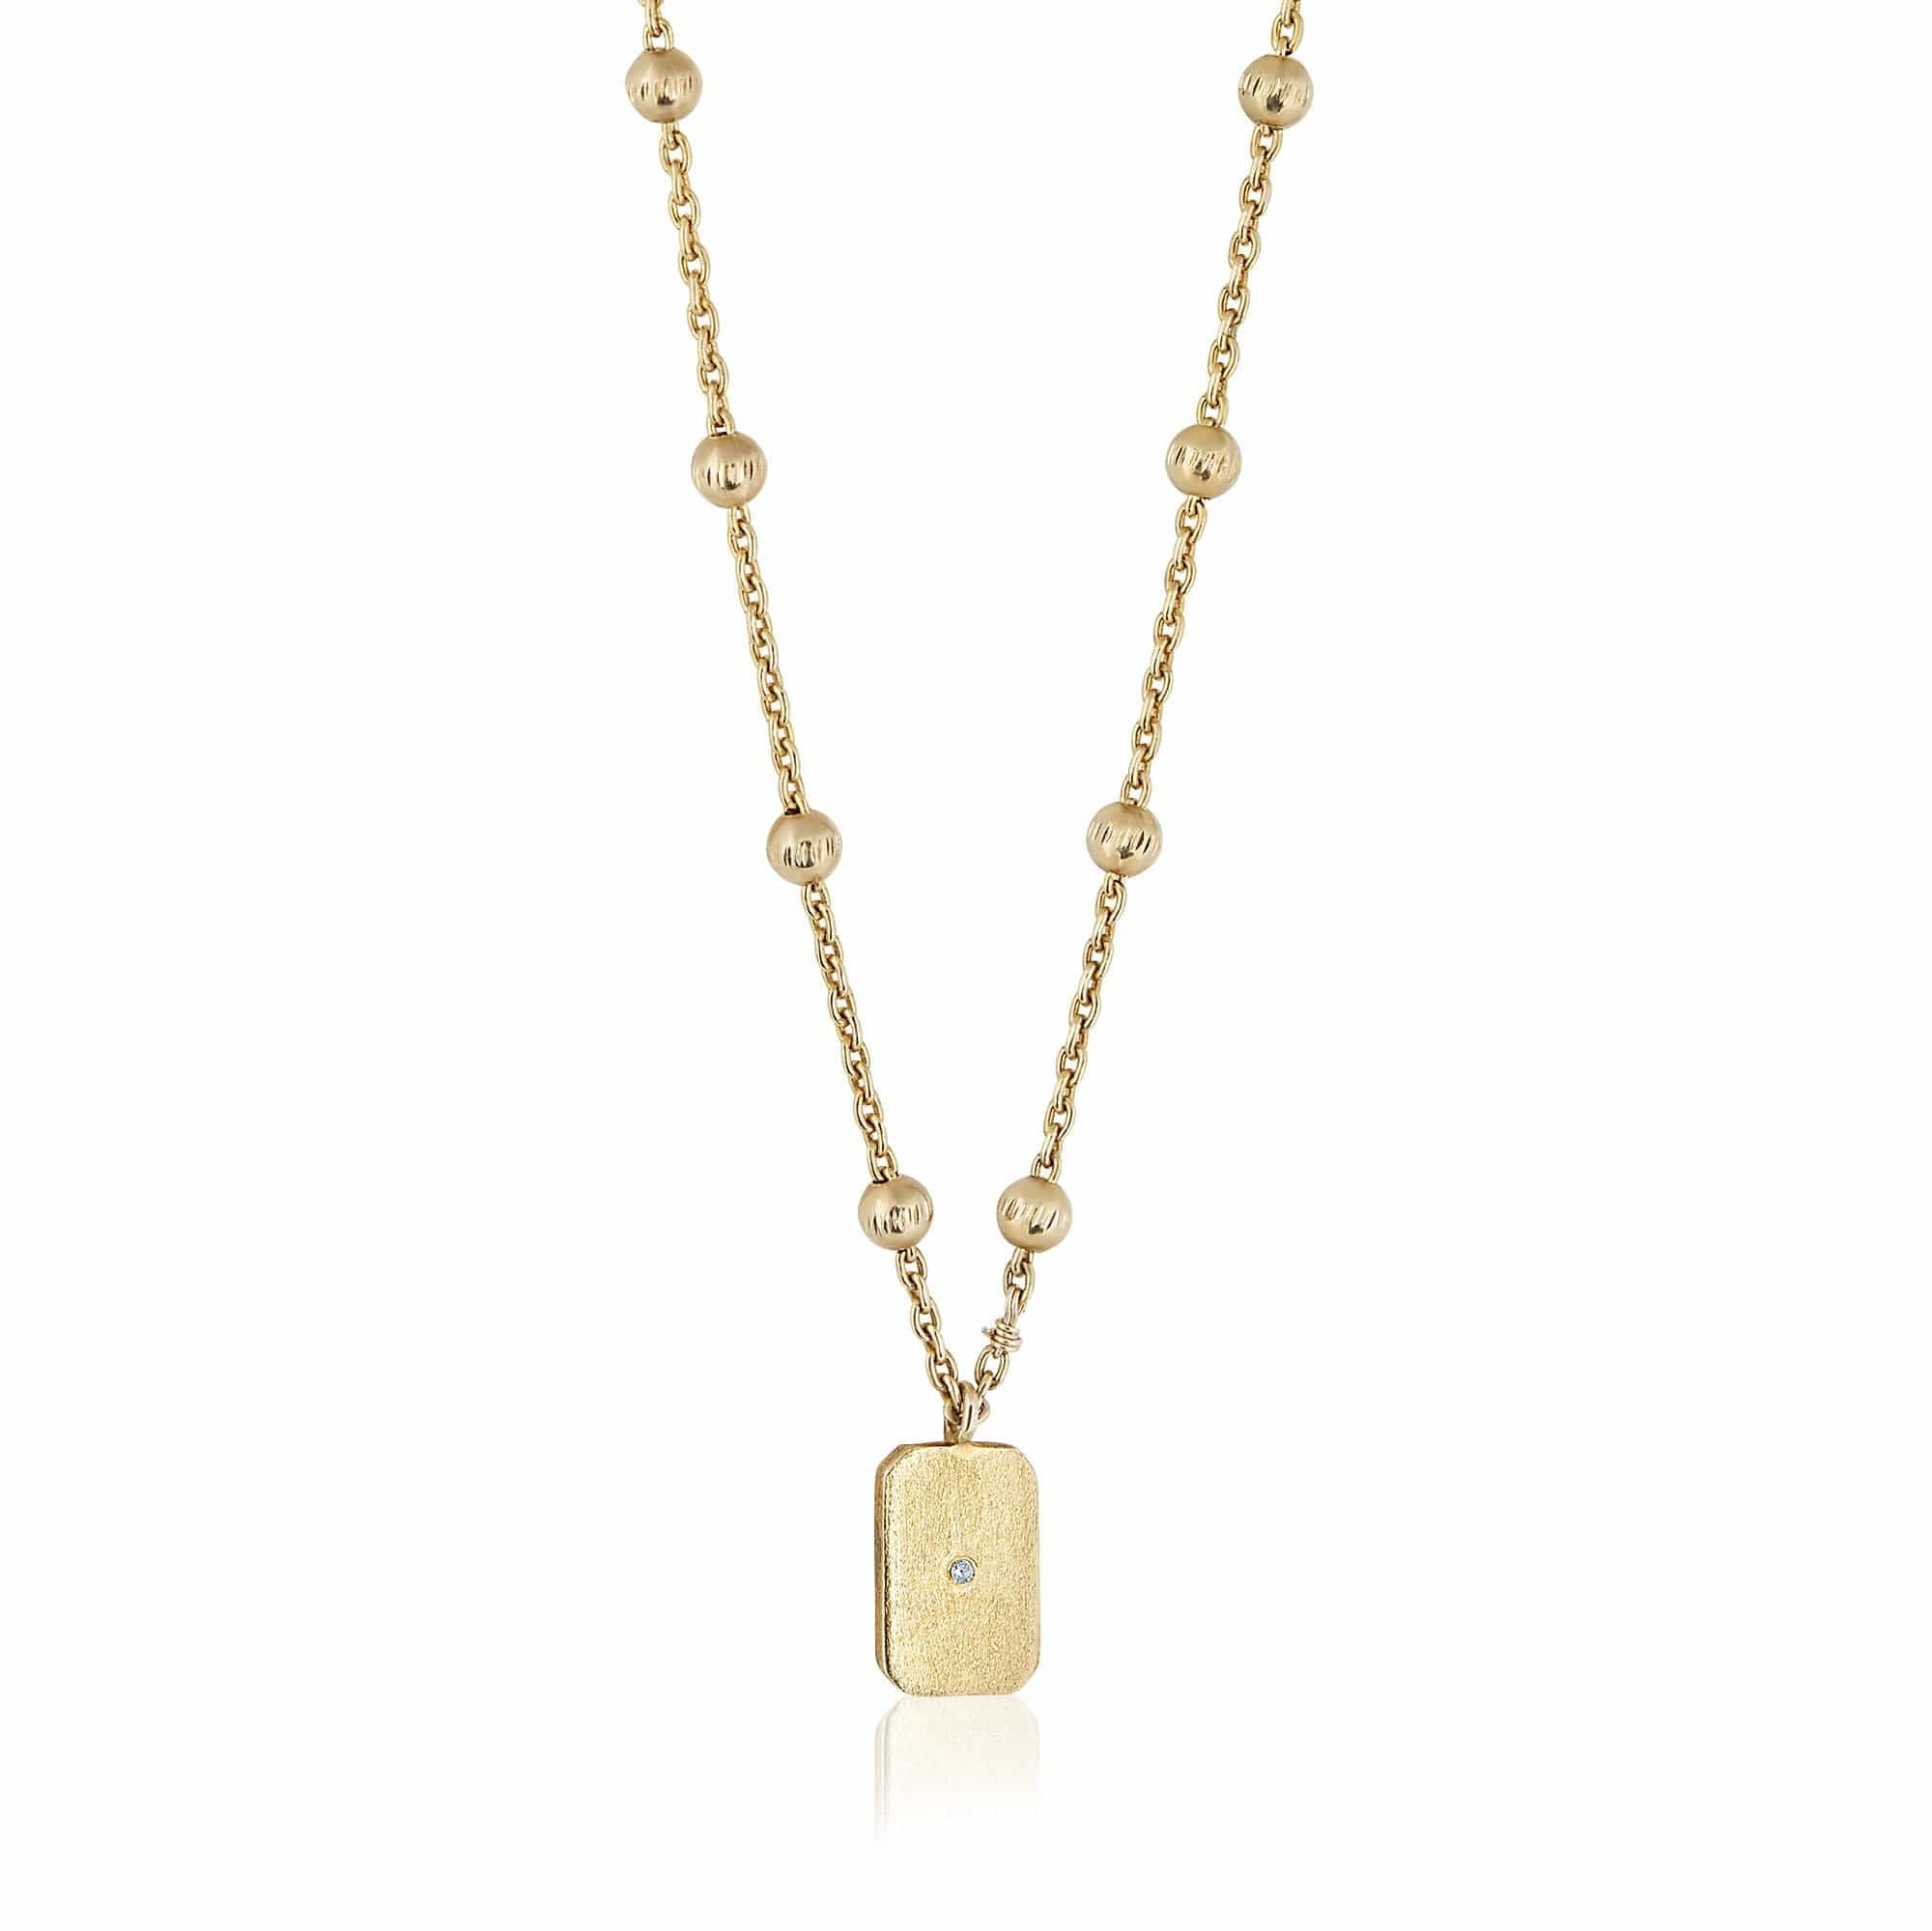 ela rae lara mini rectangle necklace matte 14k yellow gold plate